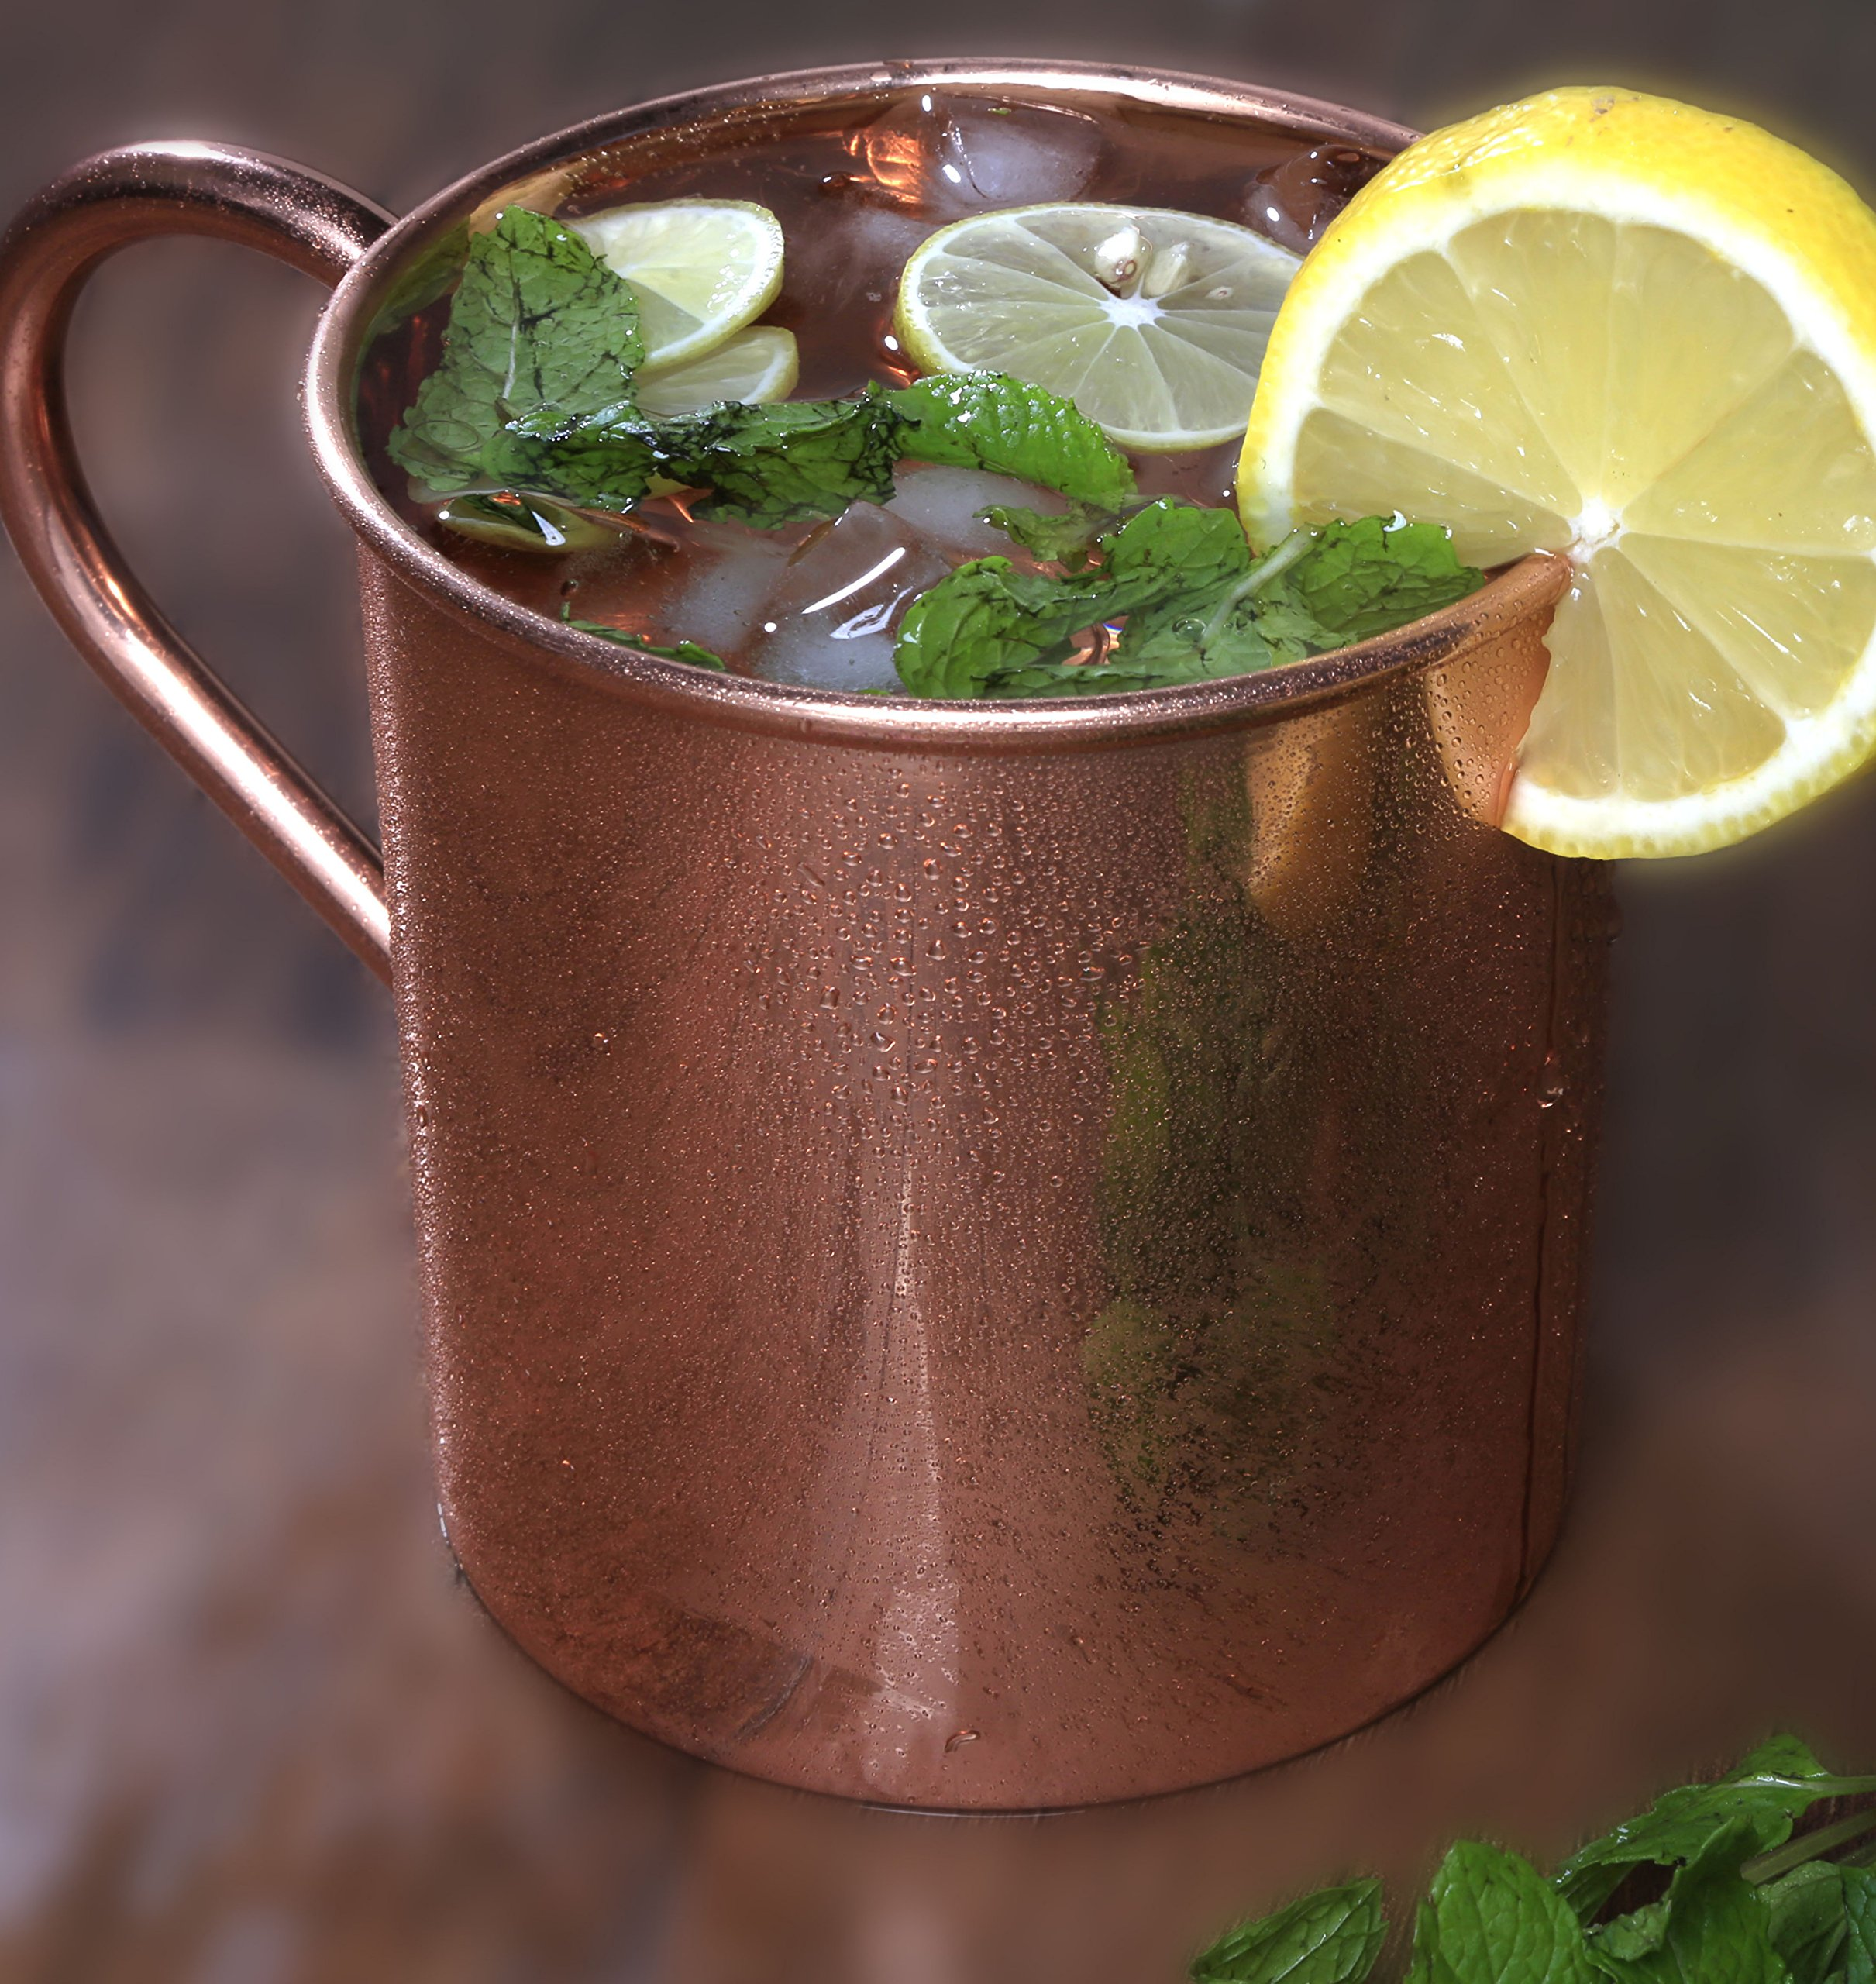 Melange Set of 4 Copper Classic Mug for Moscow Mules - 24 oz - 100% Pure Copper - Heavy Gauge - No lining - Includes FREE Recipe book